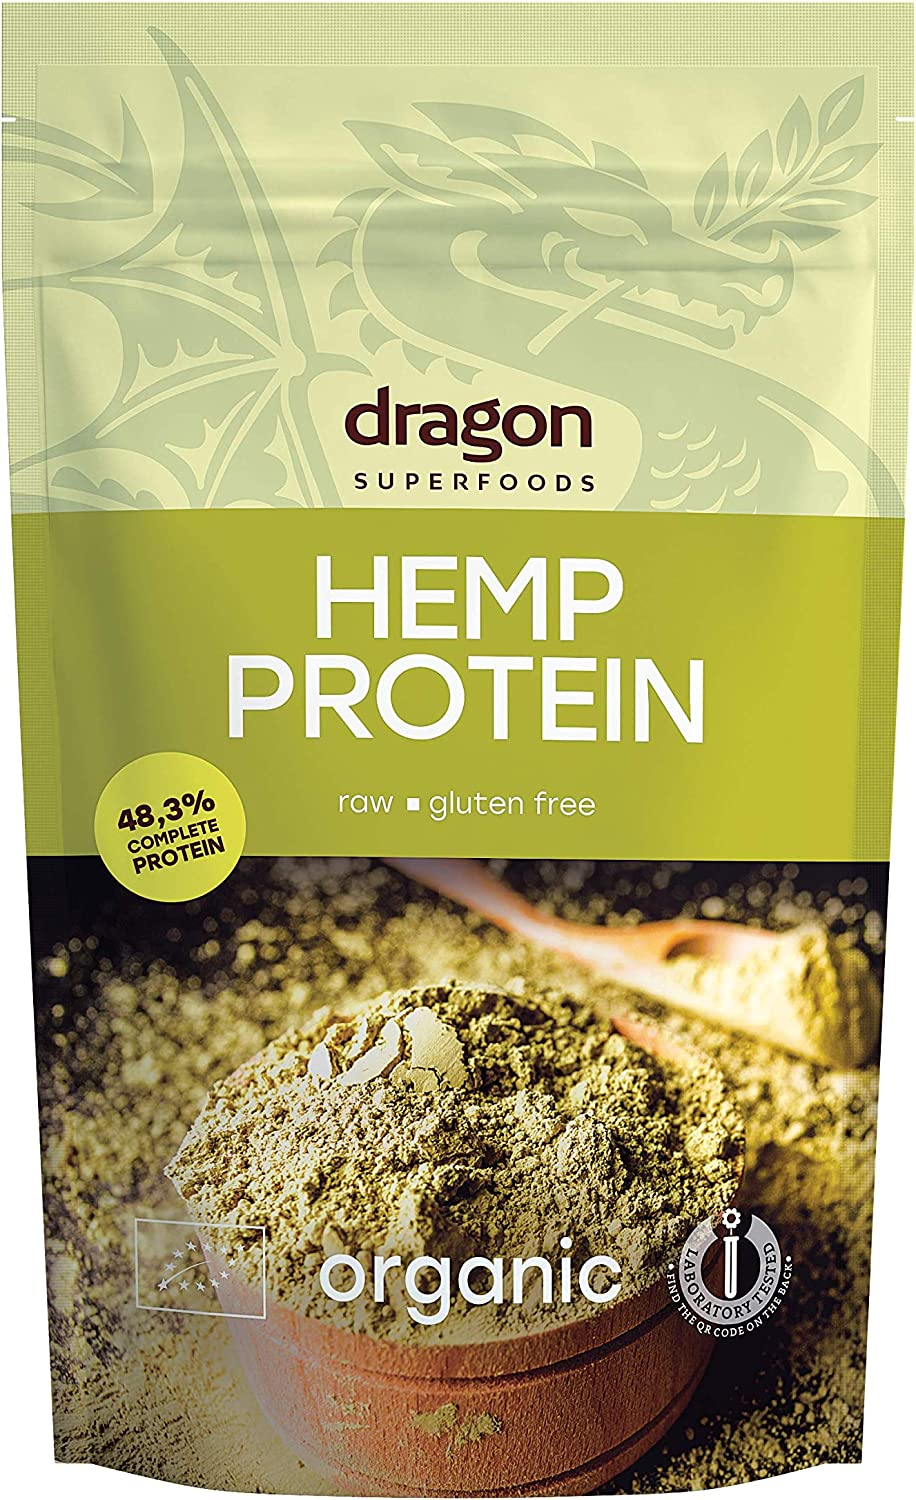 Dragon Superfoods HEMP Seeds Vegan Protein Powder. 100% Bio Organic Plant Based Soy and Gluten Free Protein for Optimum Nutrition. Non Chemically Extracted - 200gr (10-13 Servings)